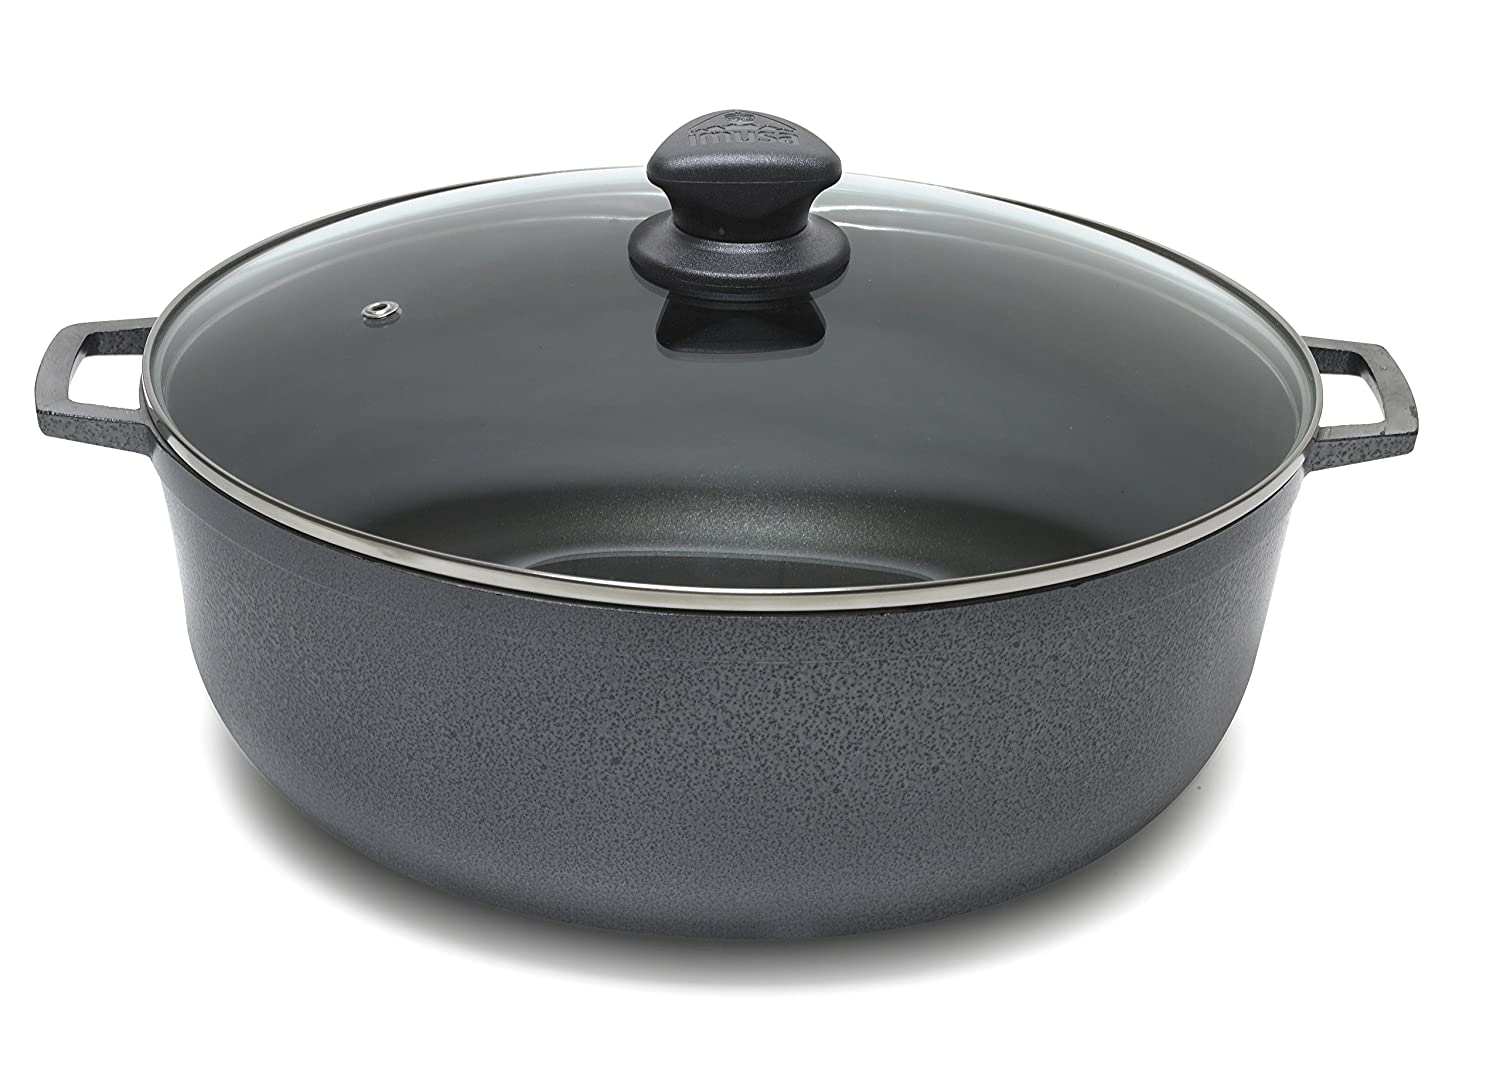 IMUSA USA GAU-86626T Colombian Nonstick Caldero with Porcelain Hammered Finish 4.8-Quart, Dark Gray